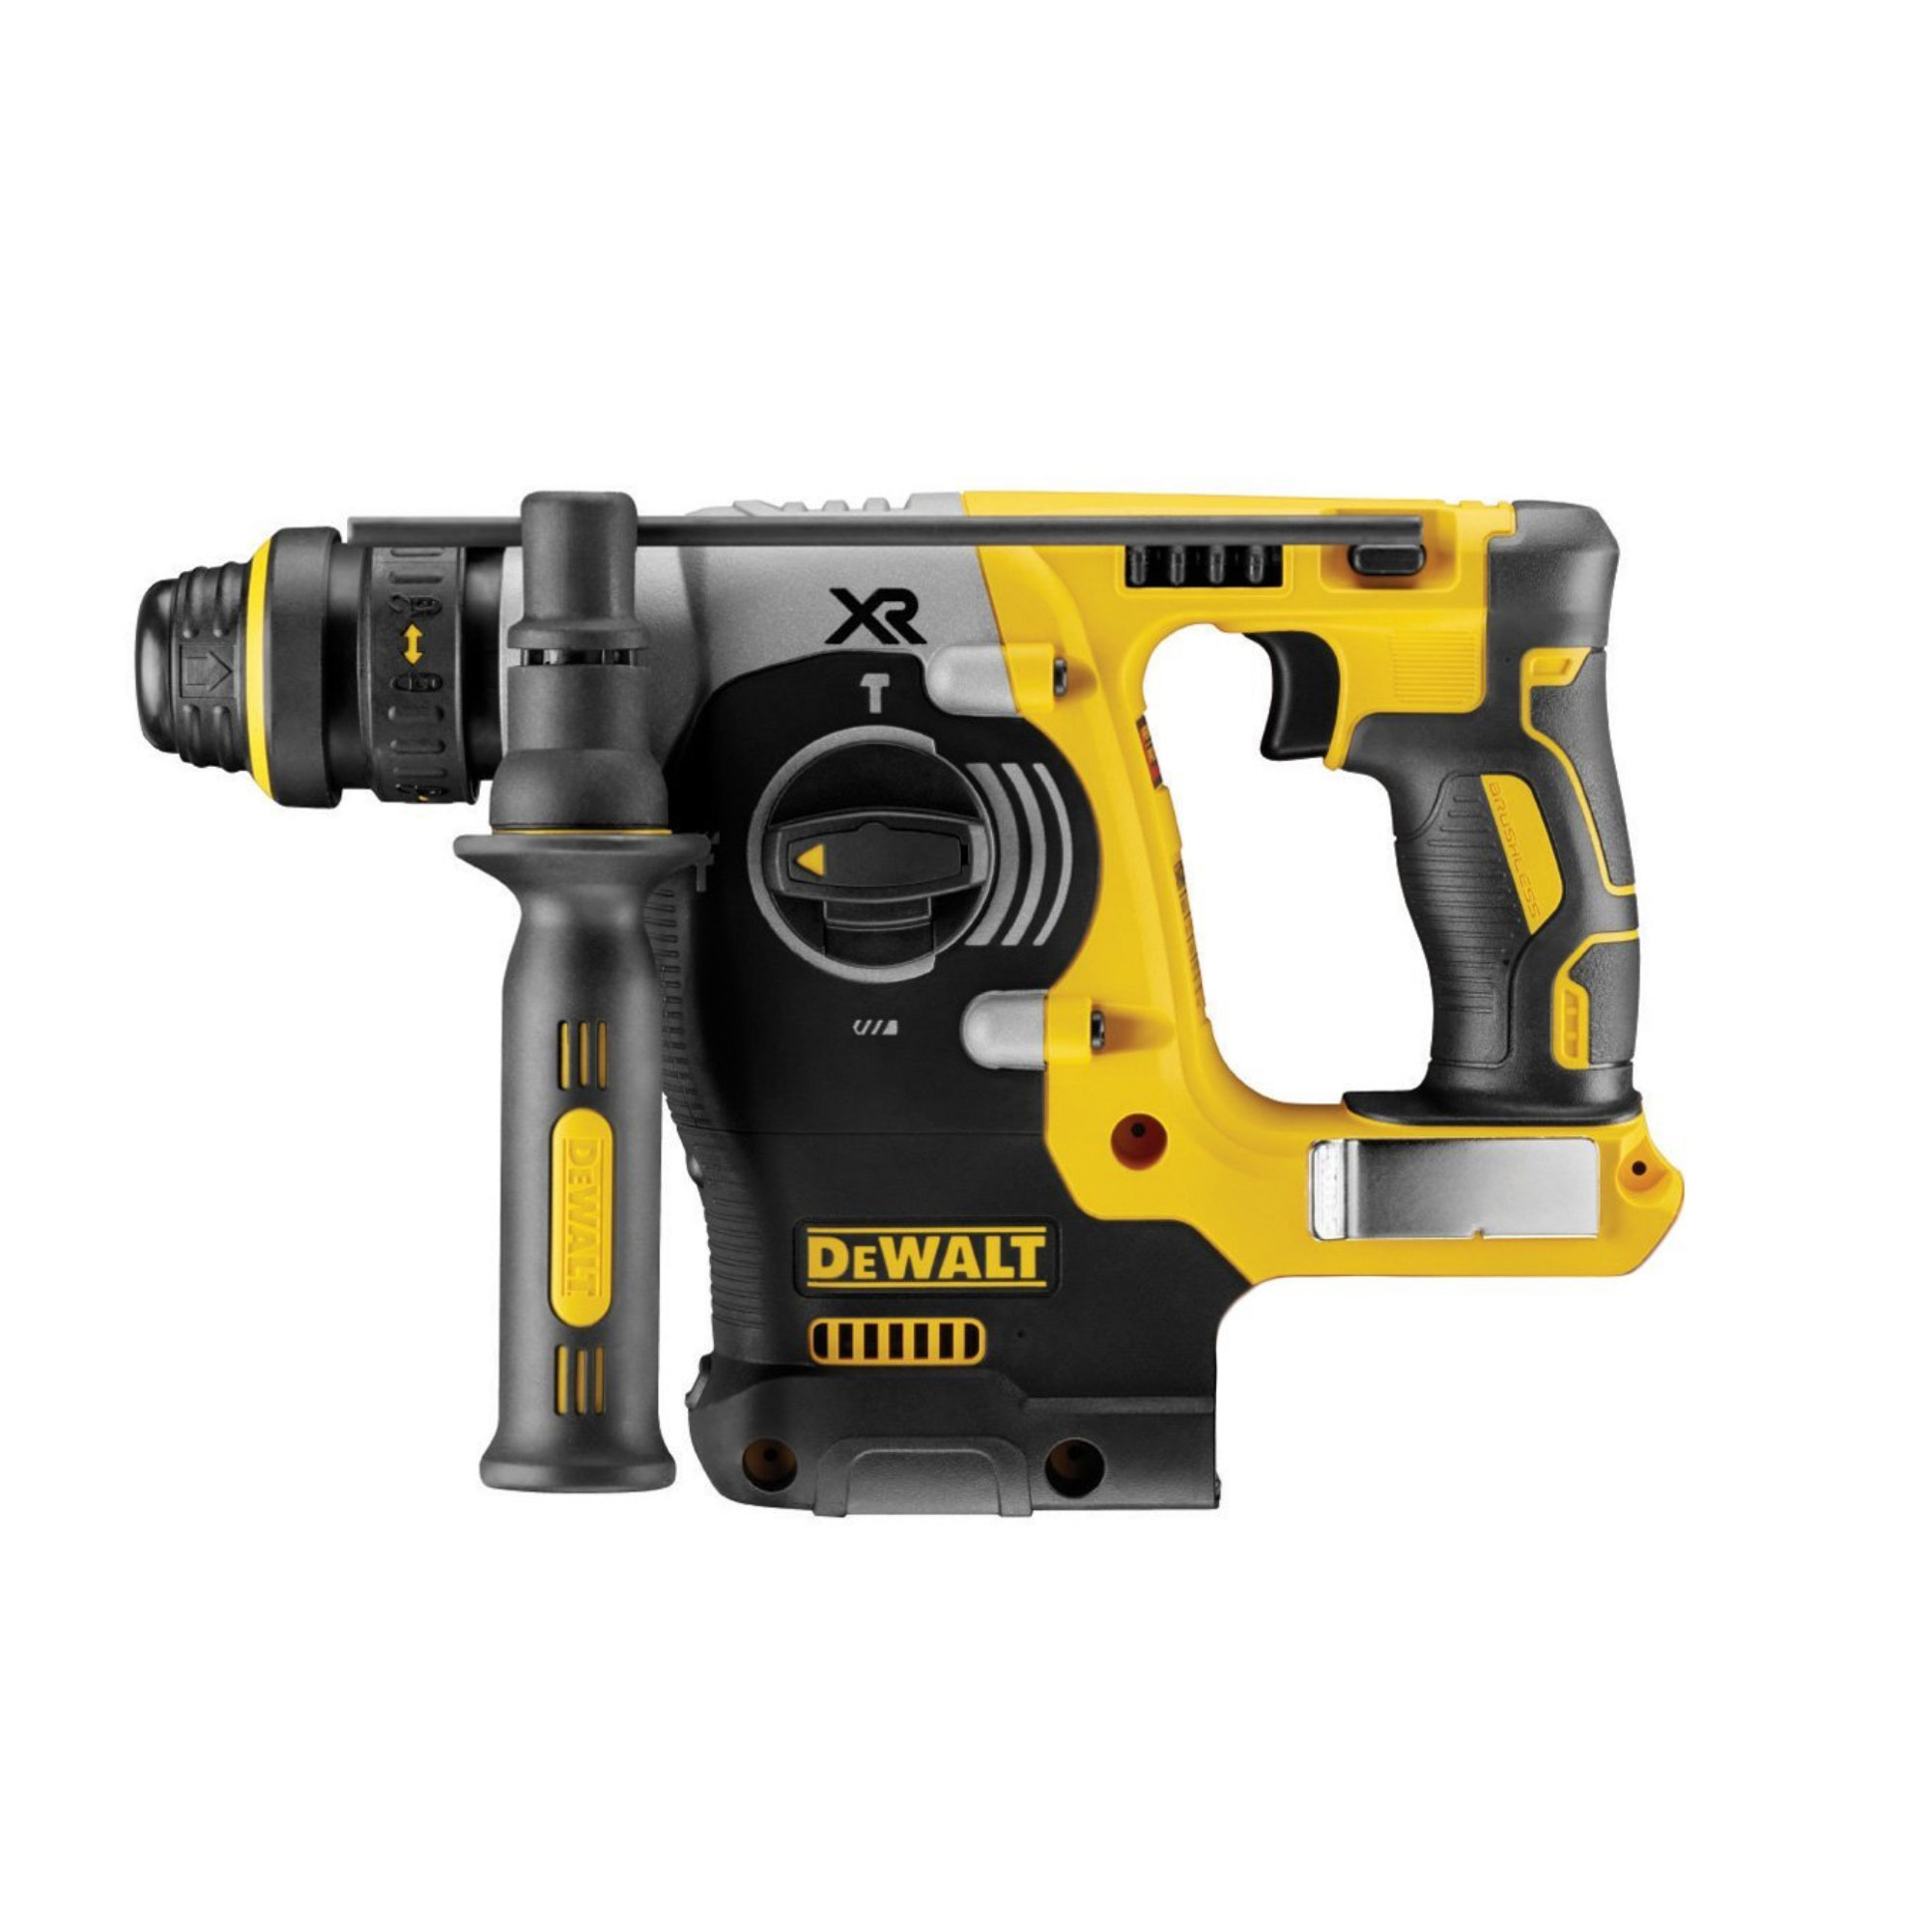 dewalt dch273 dewalt 18v li ion xr sds rotary hammer drill body only. Black Bedroom Furniture Sets. Home Design Ideas